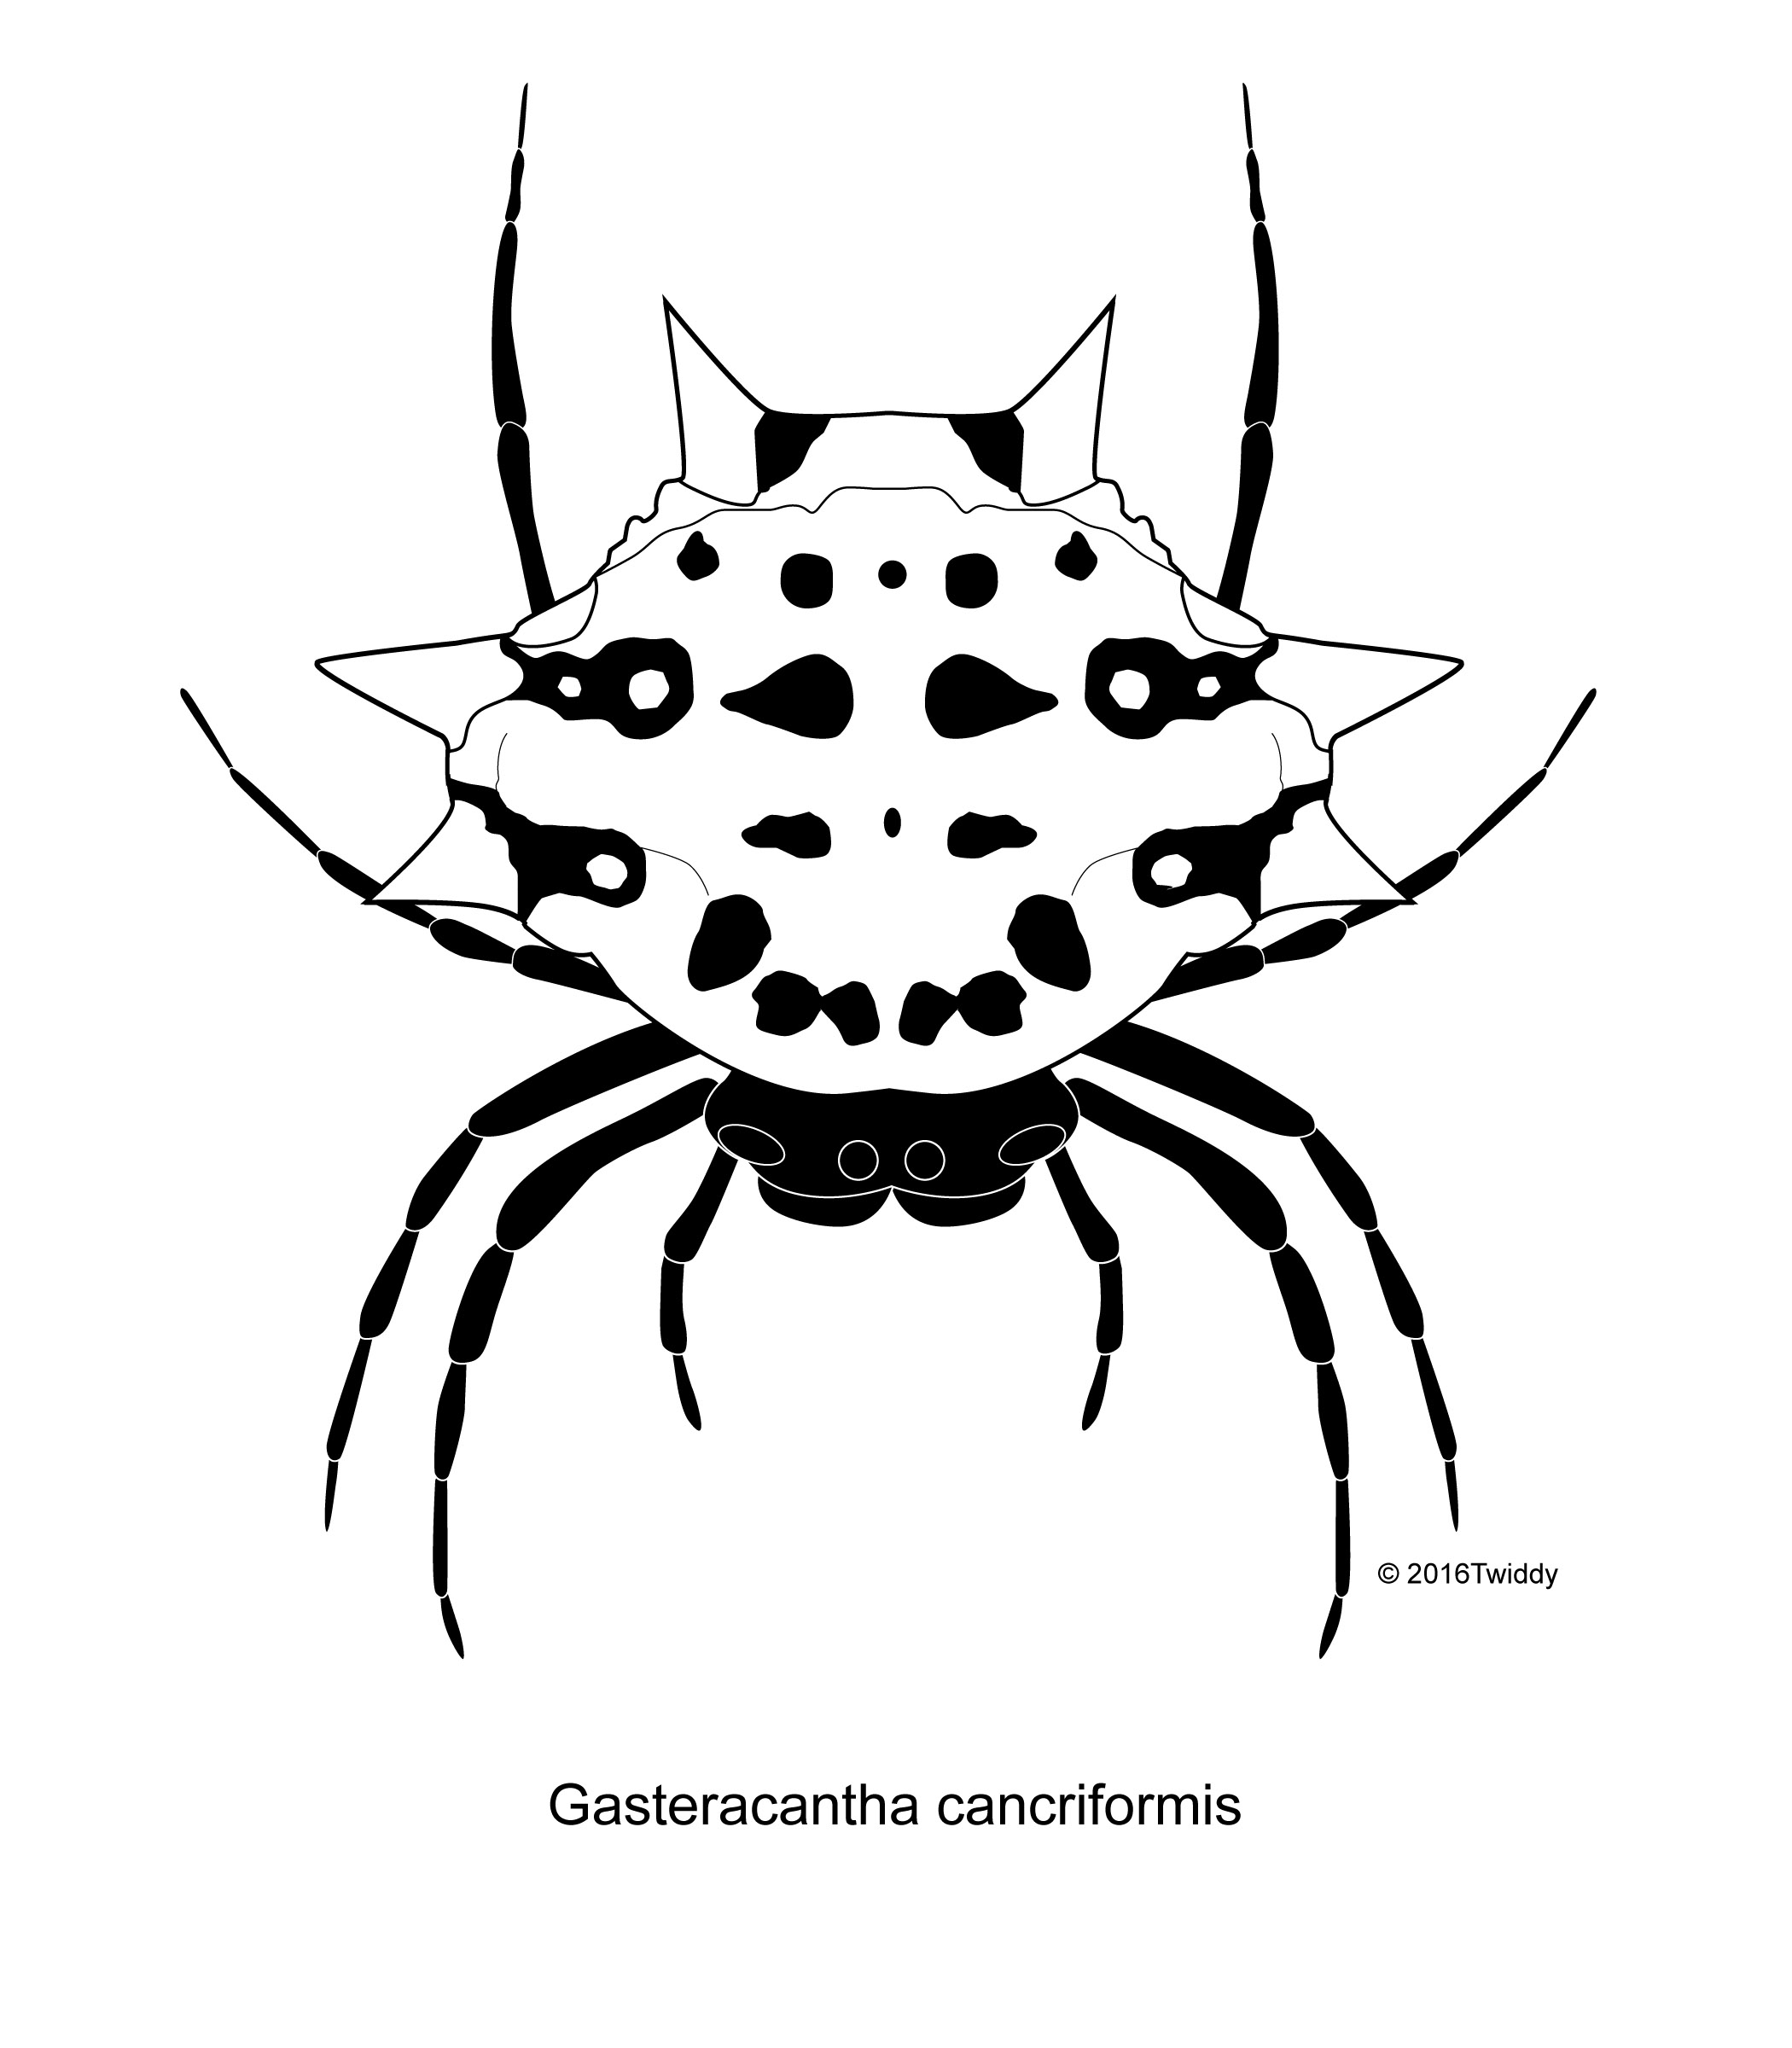 Drawn spider scientific illustration Spiny Gasteracantha Spider; Productions Sean